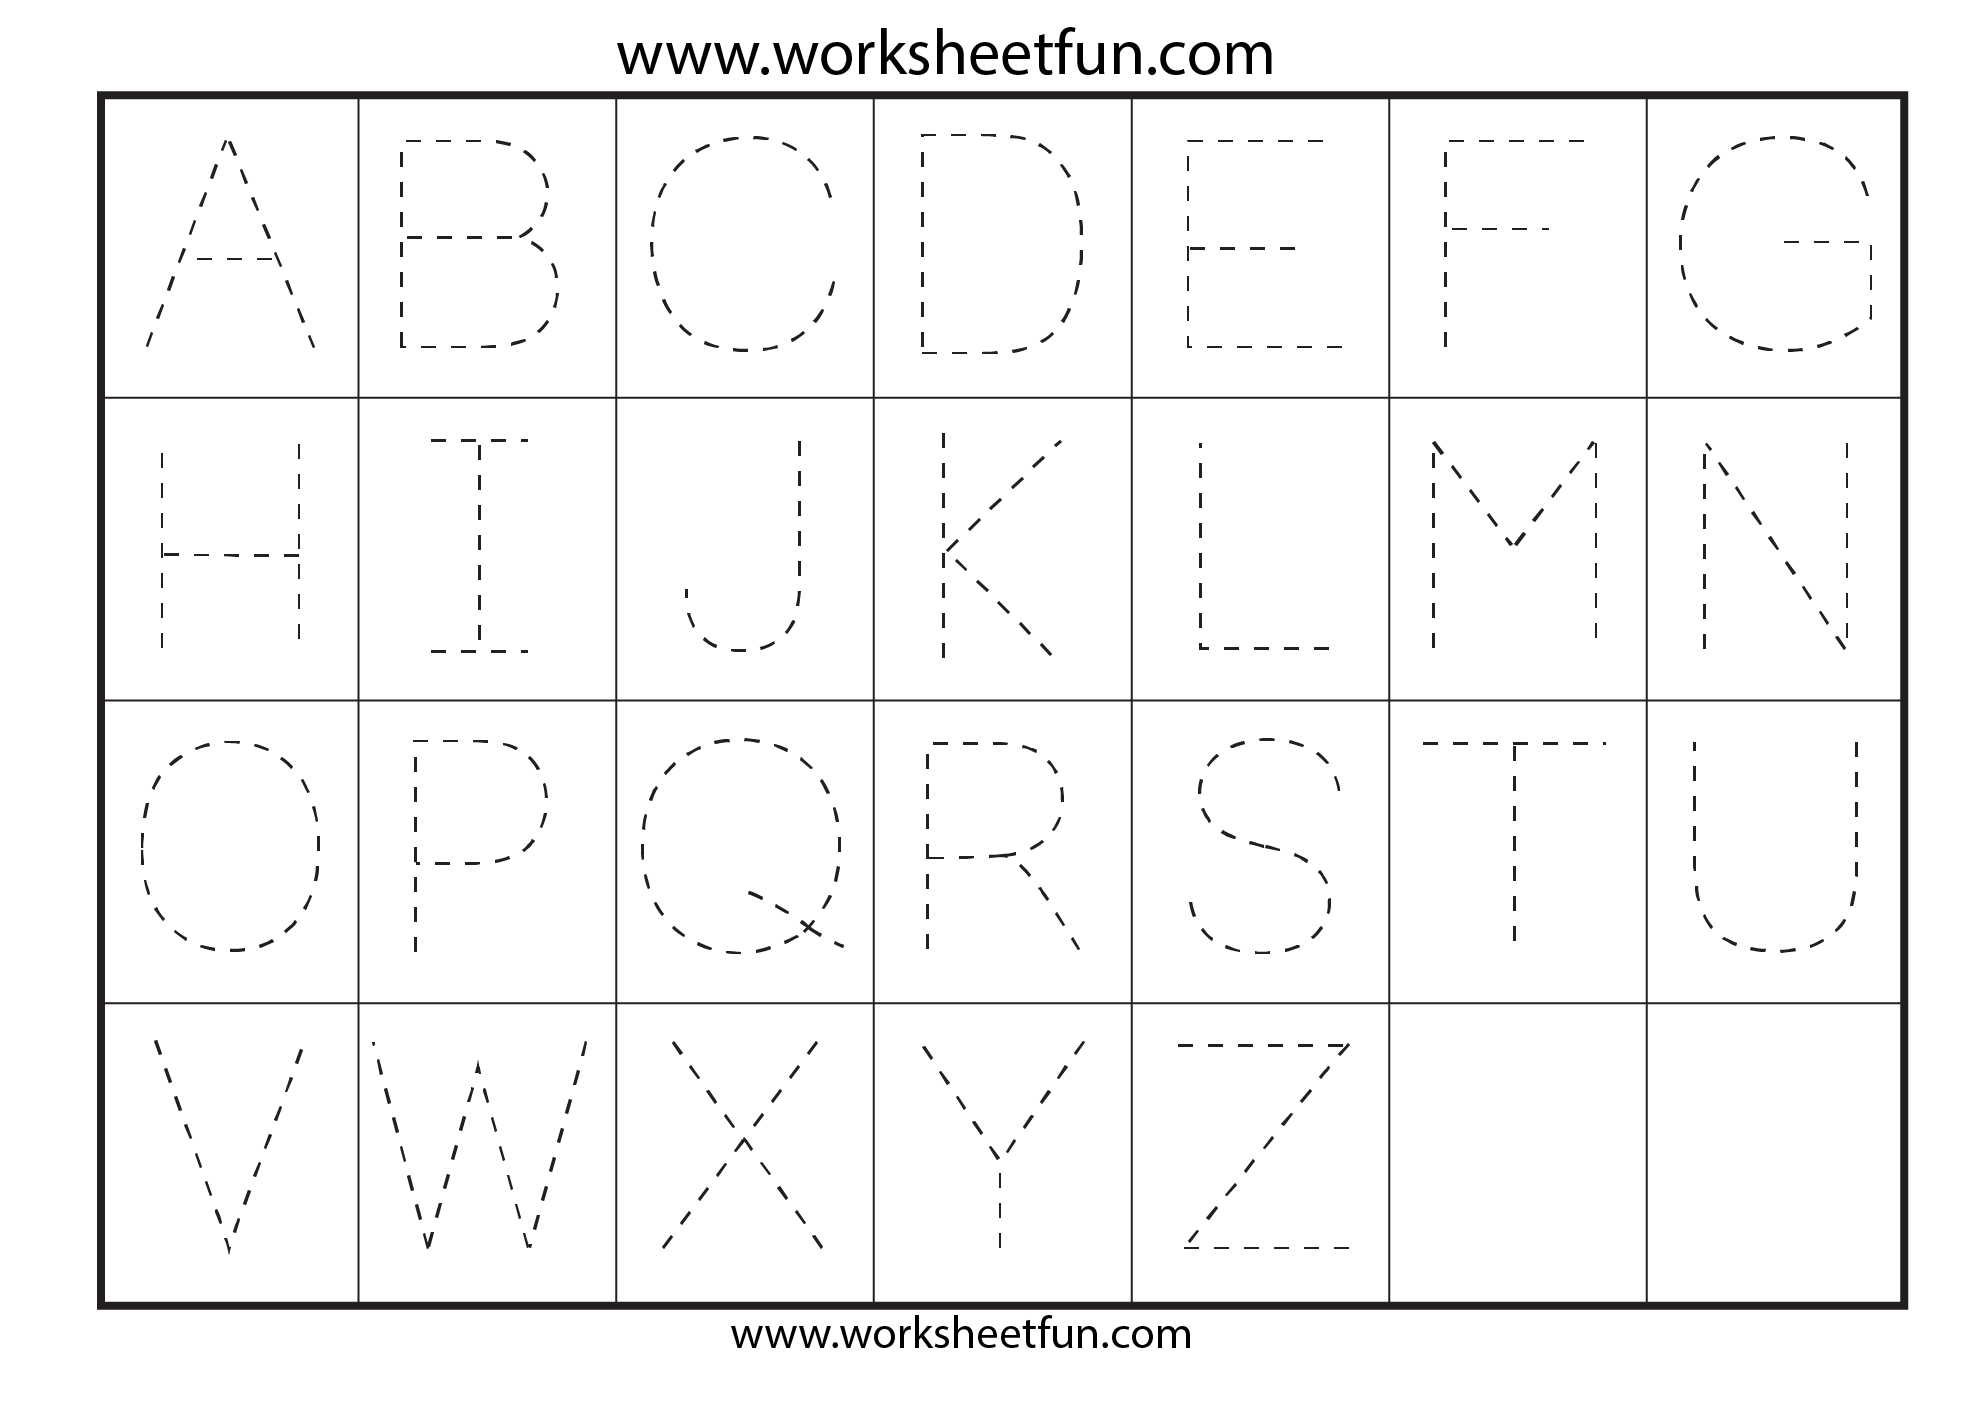 Letter Printable Images Gallery Category Page 22